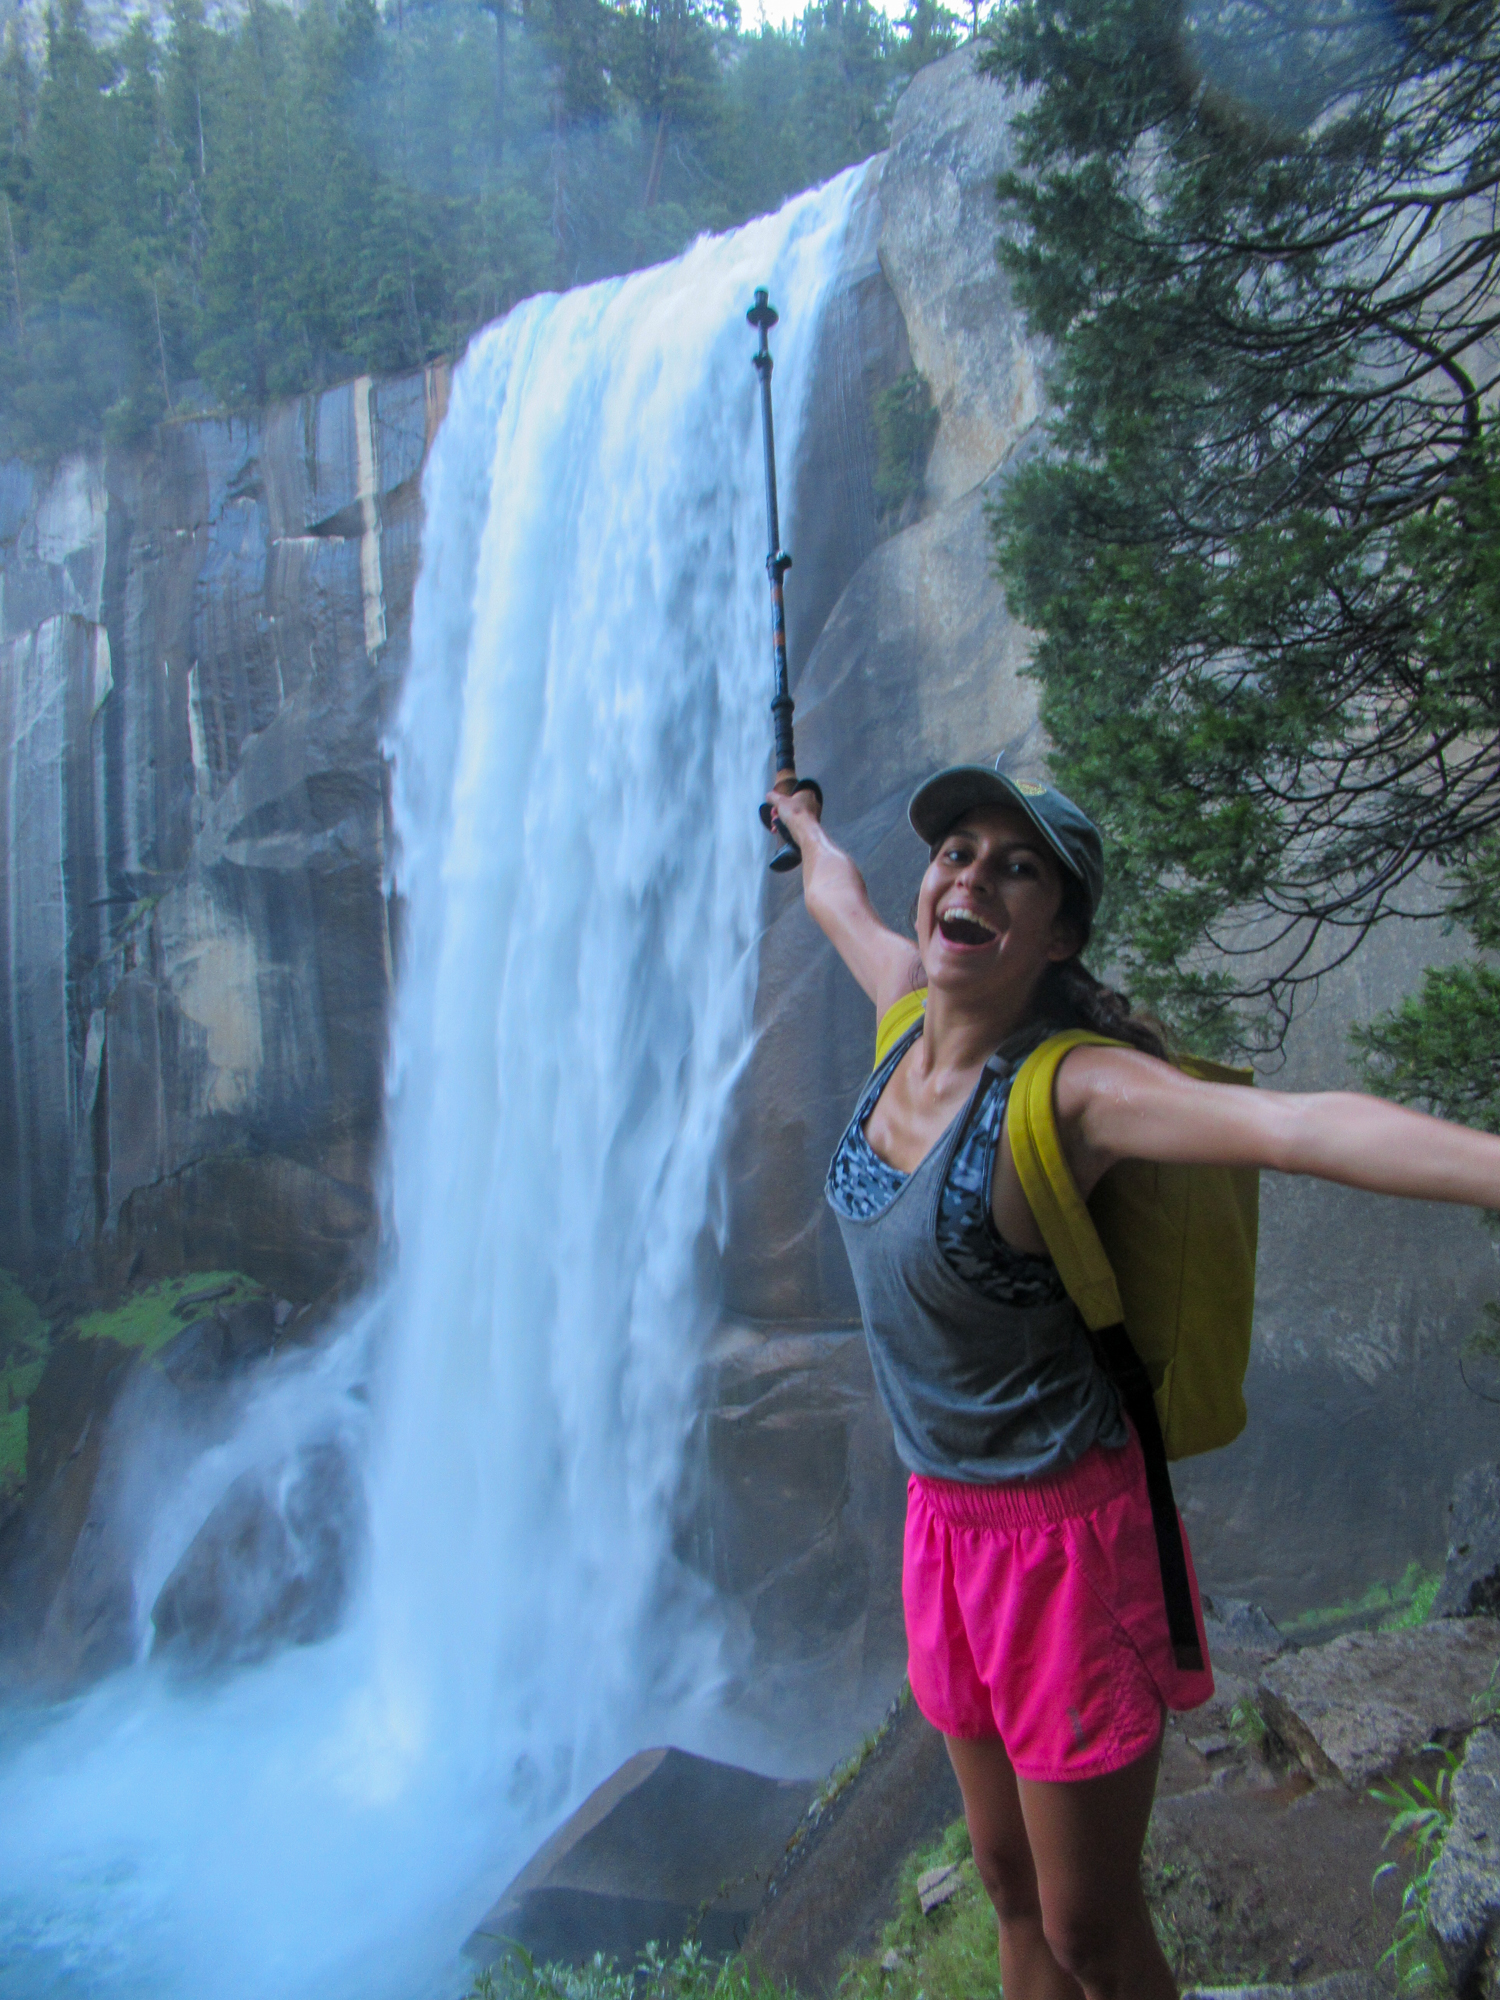 Madison Snively celebrates arriving at Vernal Falls.